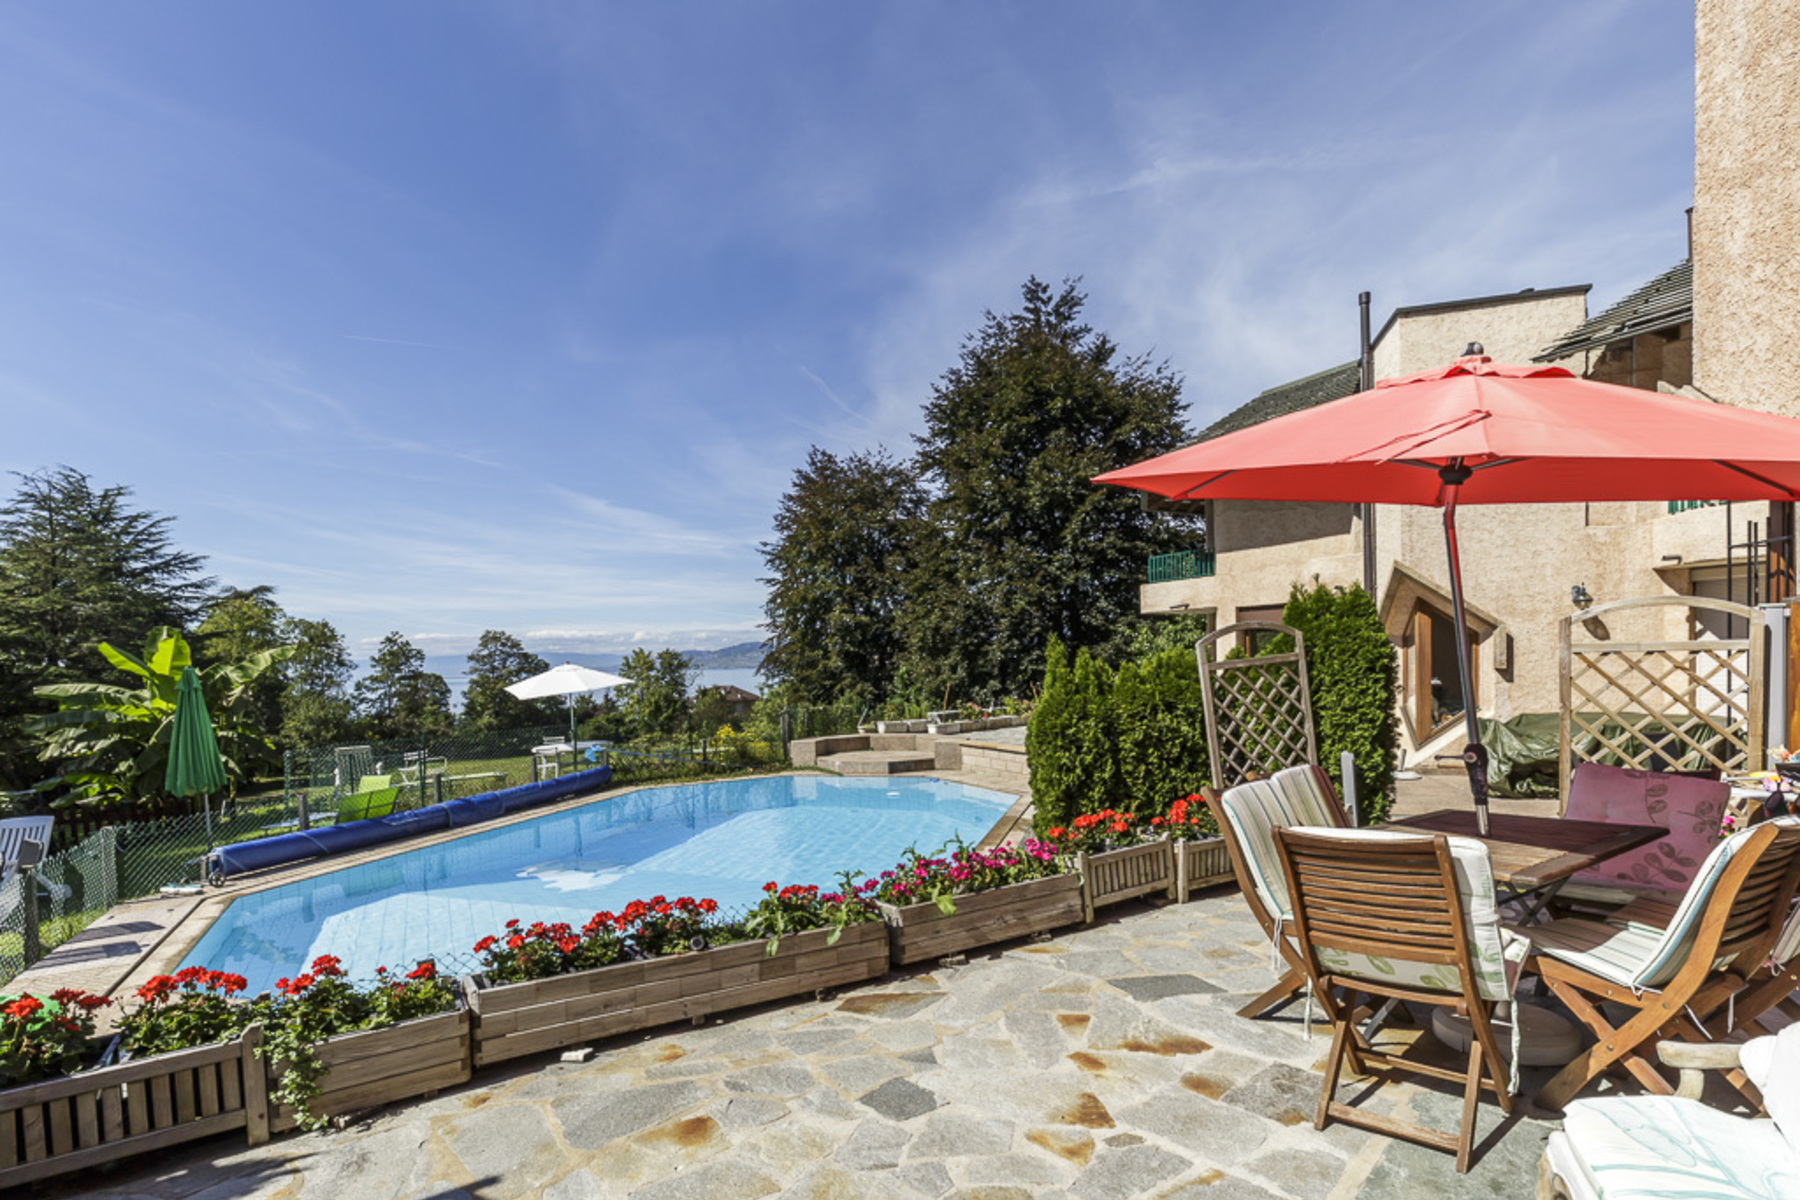 Casa Unifamiliar por un Venta en Terraced house with magnificent views over the lake and an outdoor swimming pool Villeneuve Villeneuve Vd, Vaud, 1844 Suiza